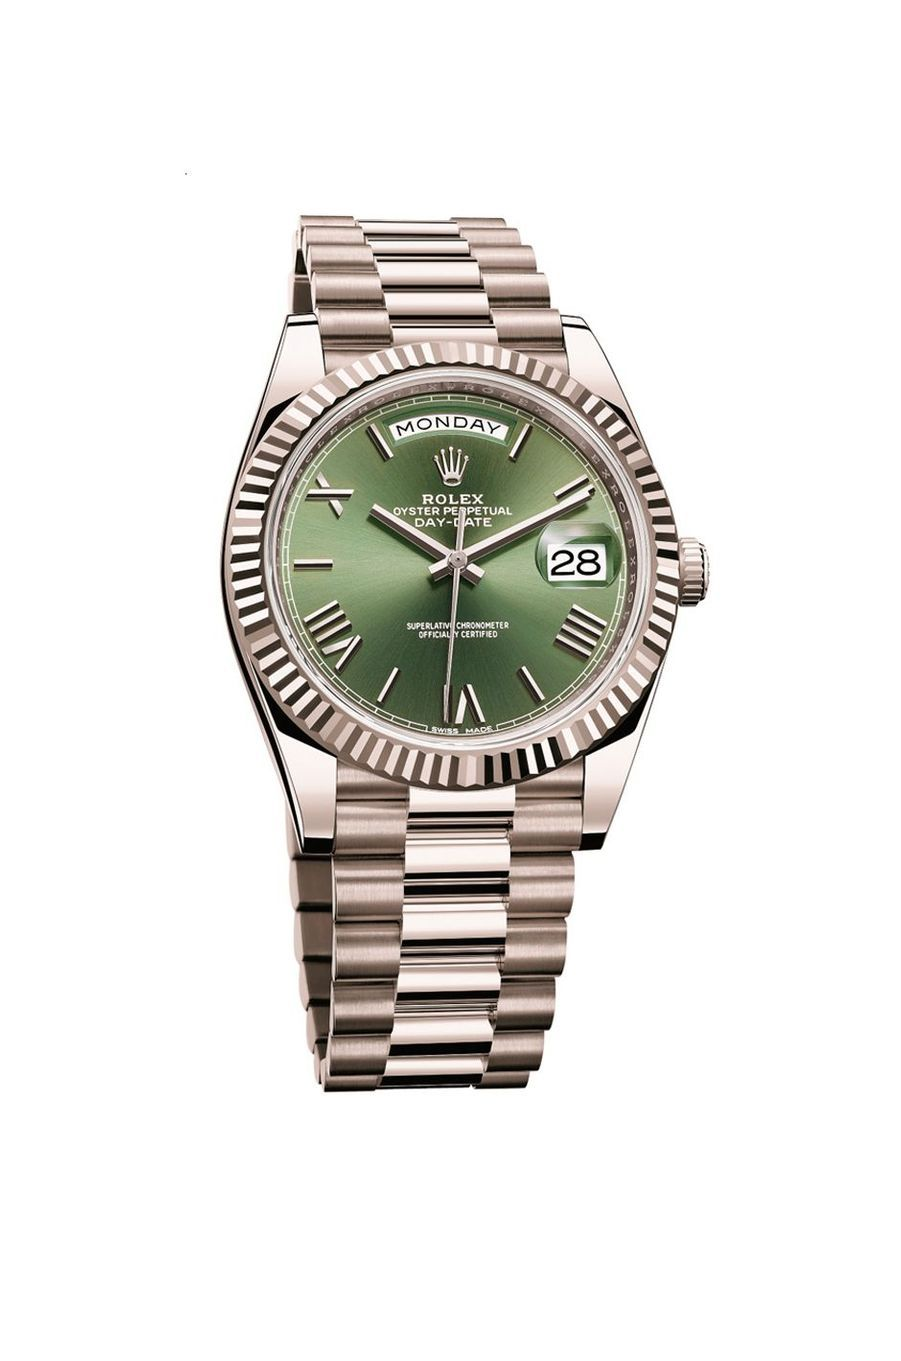 Oyster Perpetual en or gris, 40 mm de diamètre, mouvement automatique, bracelet en or gris, 34 400 €. Rolex.